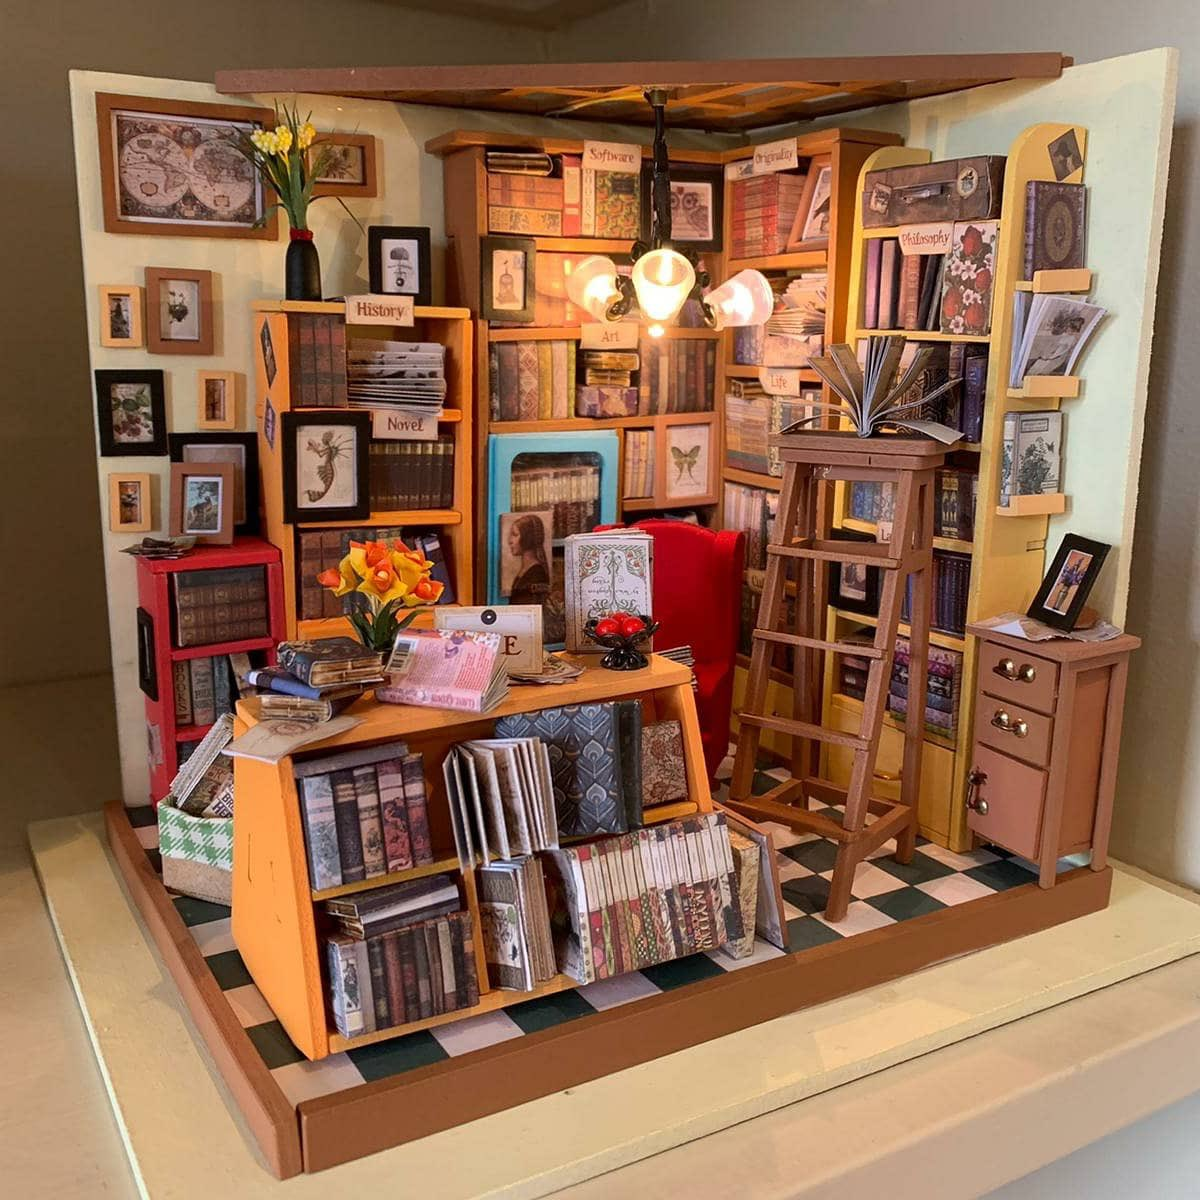 And it's finished! My very own miniature bookshop. A real labour of love.   #crafting #miniature #books #bookshoppic.twitter.com/XRXbgMlAiD